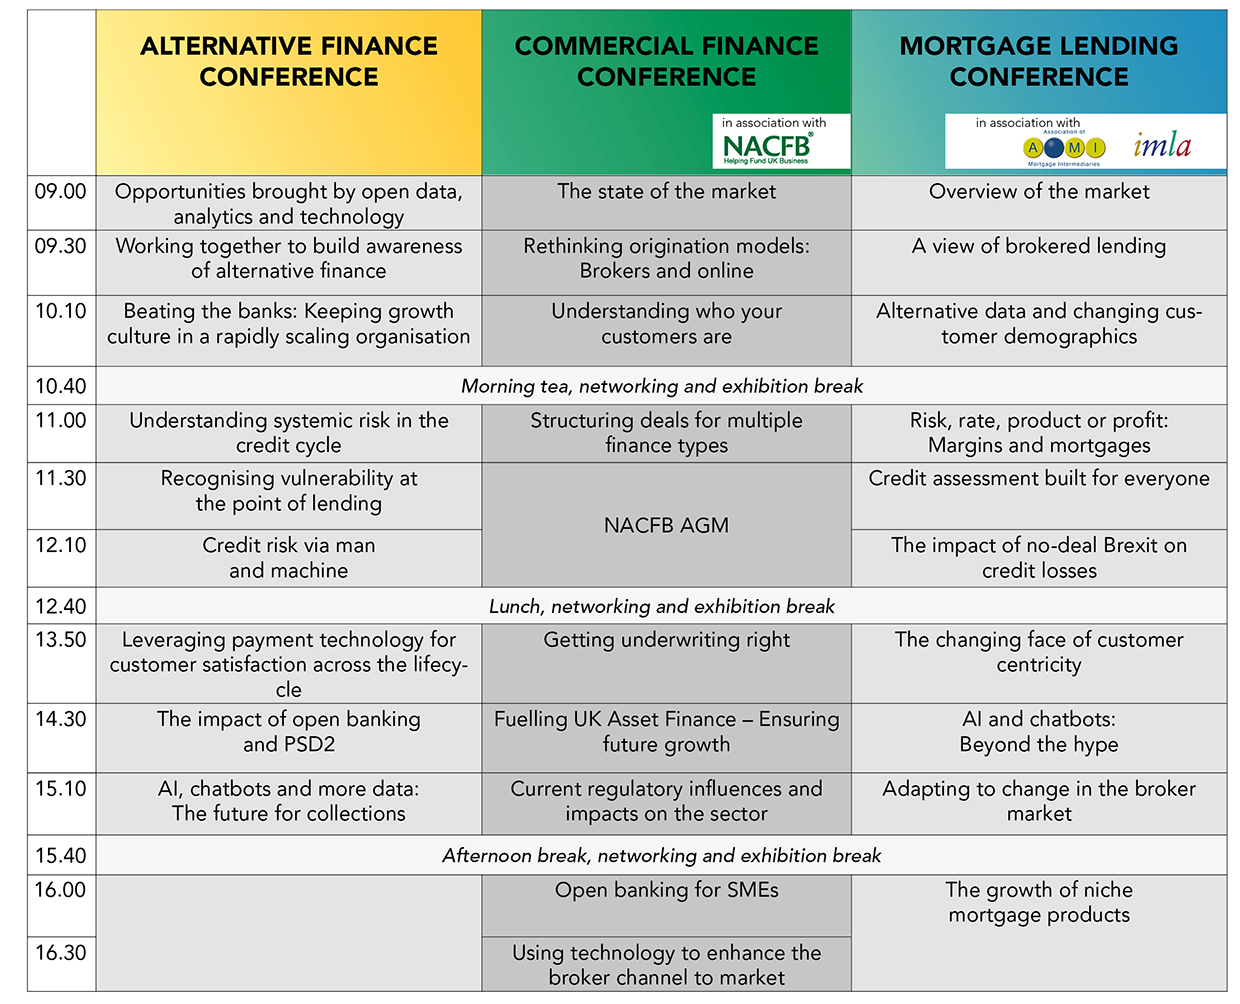 Credit Strategy - Lending Summit - Pages - Agenda 2018